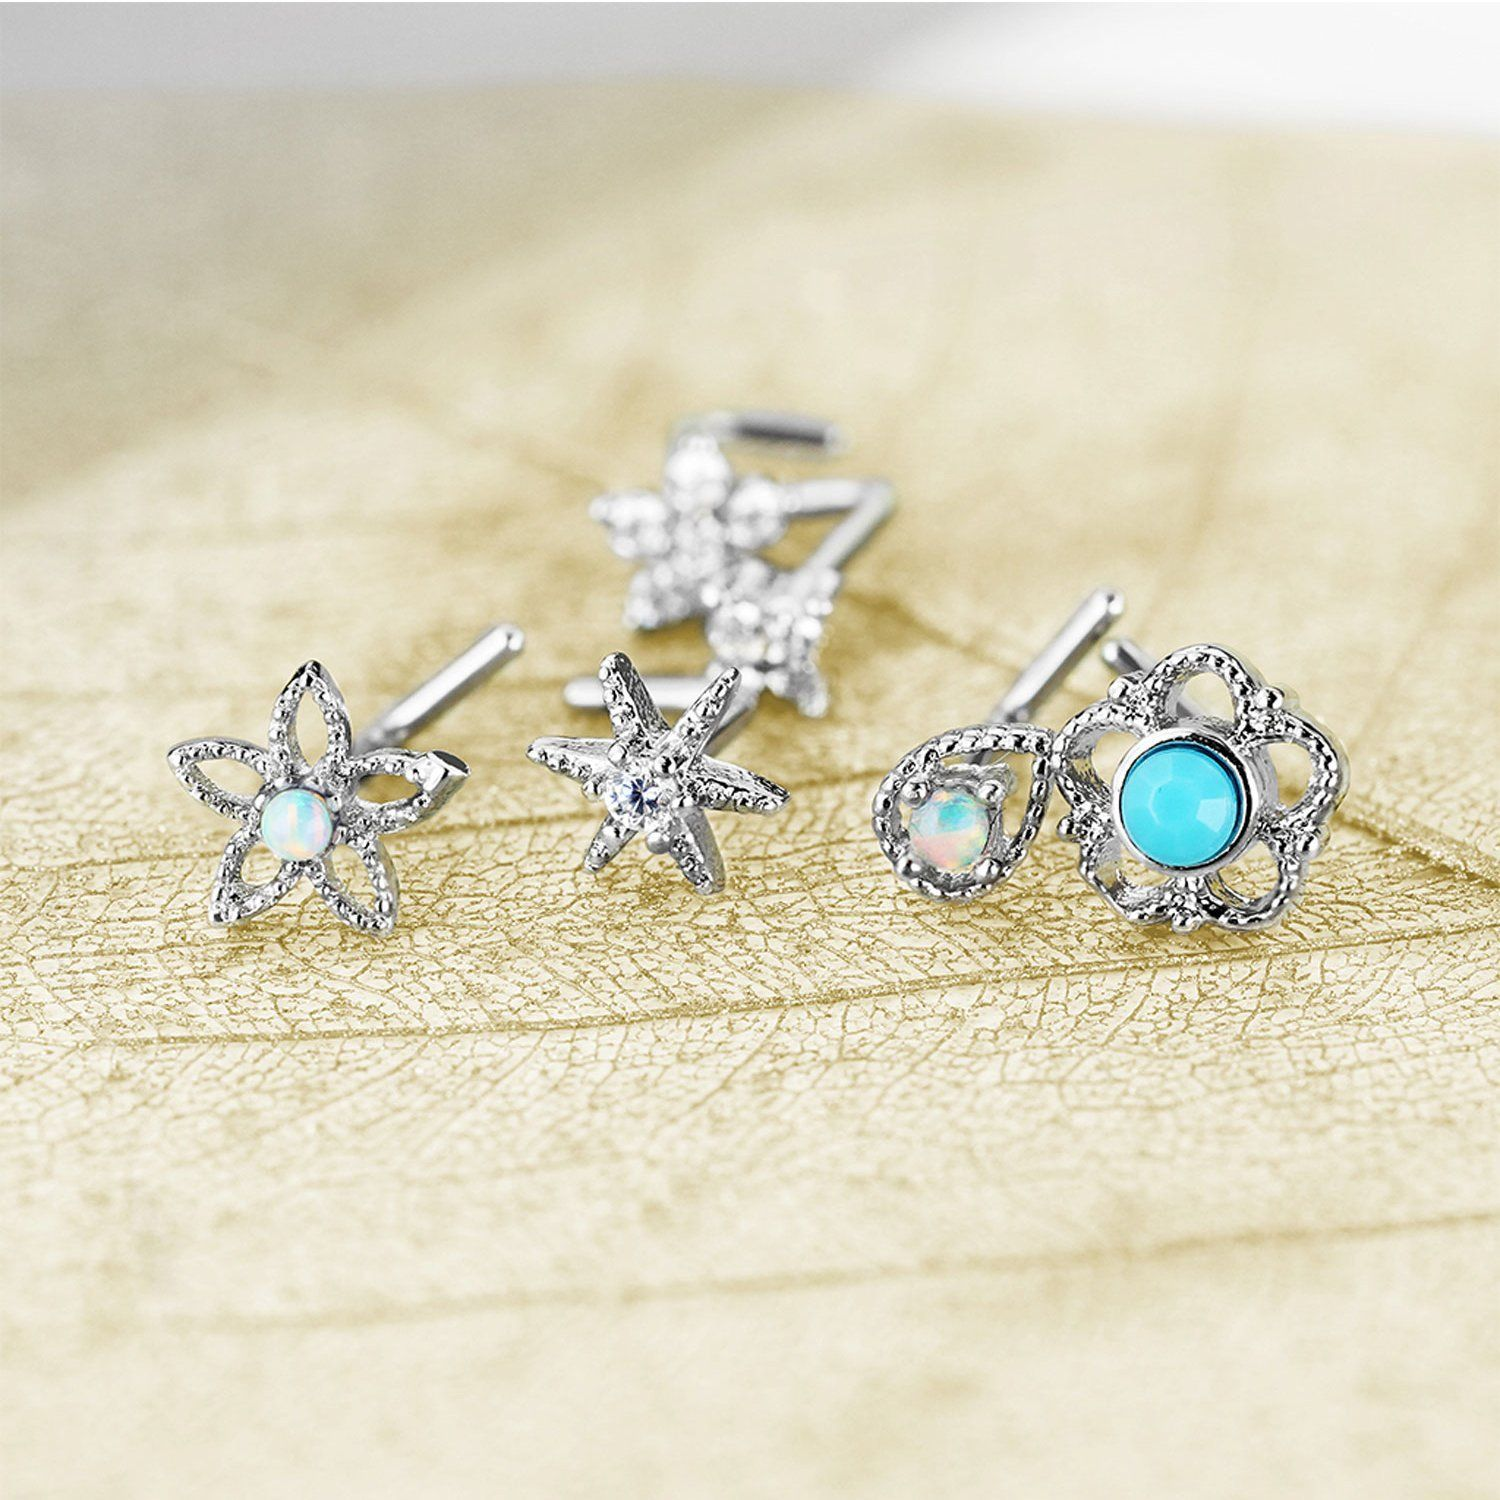 Stainless Steel Jewelry Body Piercing Nose Studs Ring Nose Rings Gems Flower